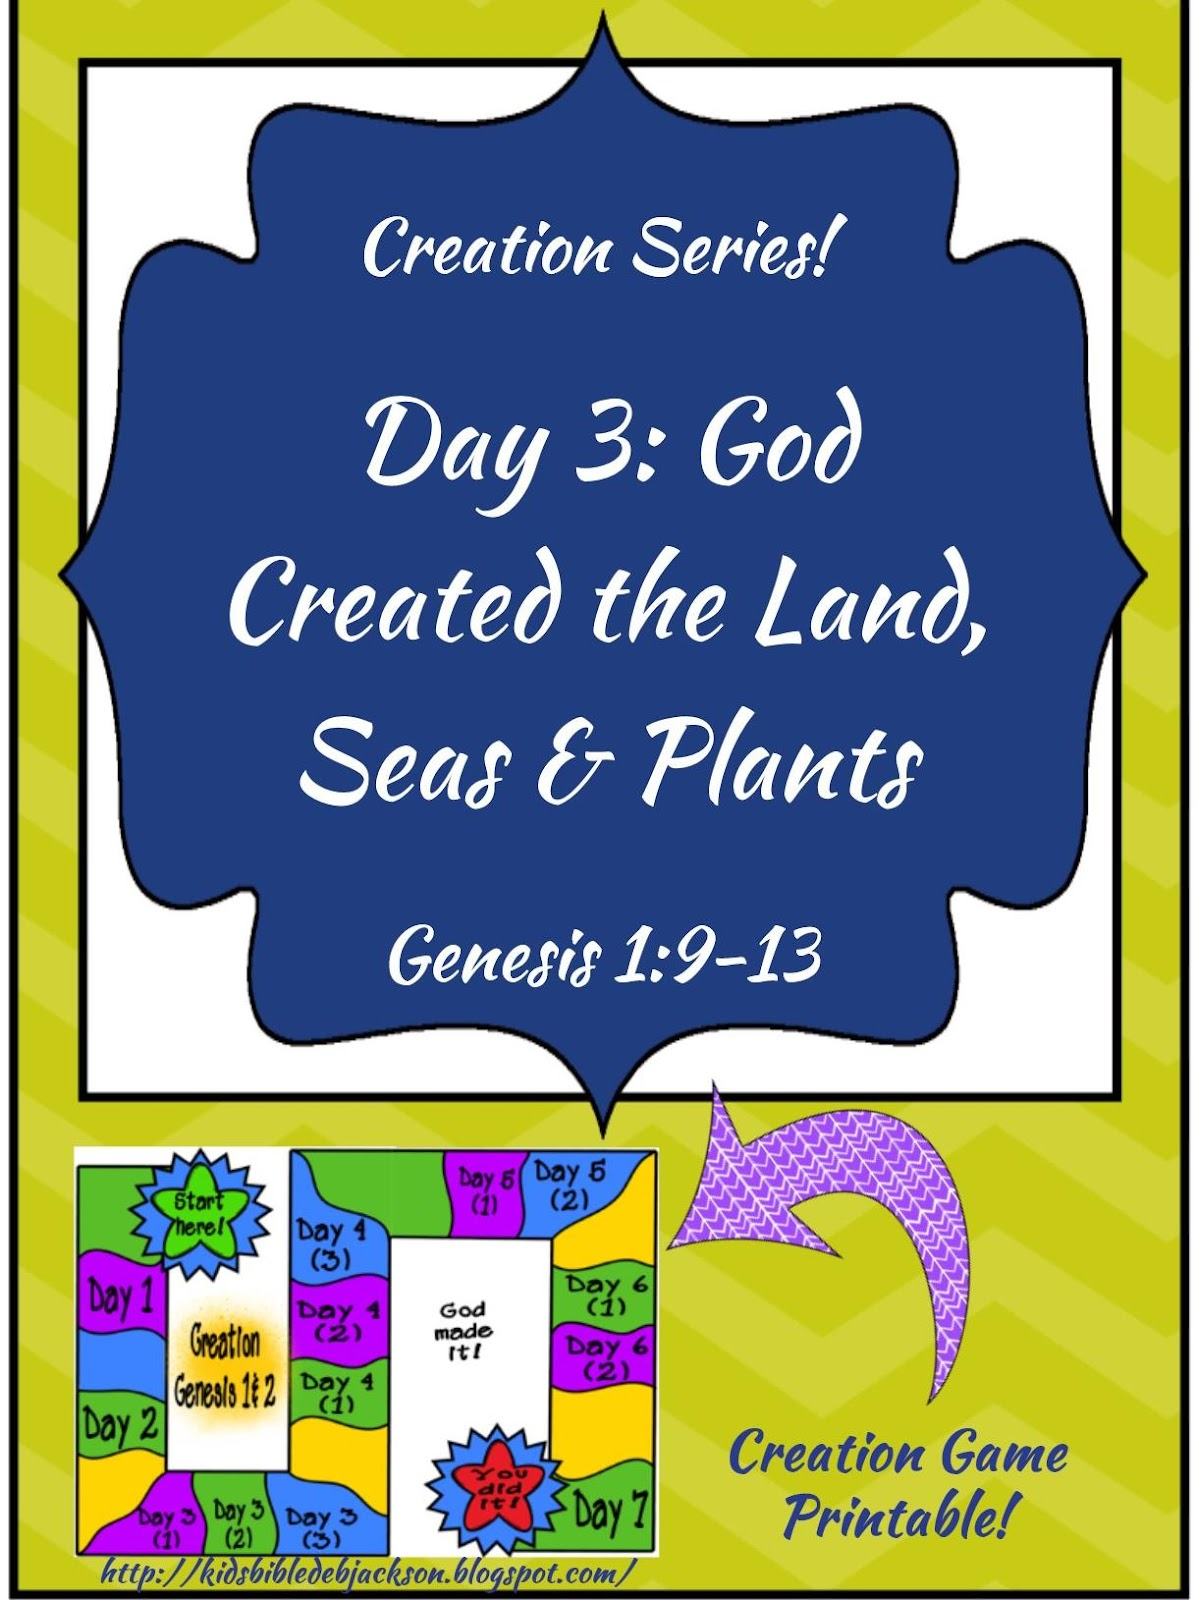 http://kidsbibledebjackson.blogspot.com/2015/01/the-creation-for-kids-day-3.html